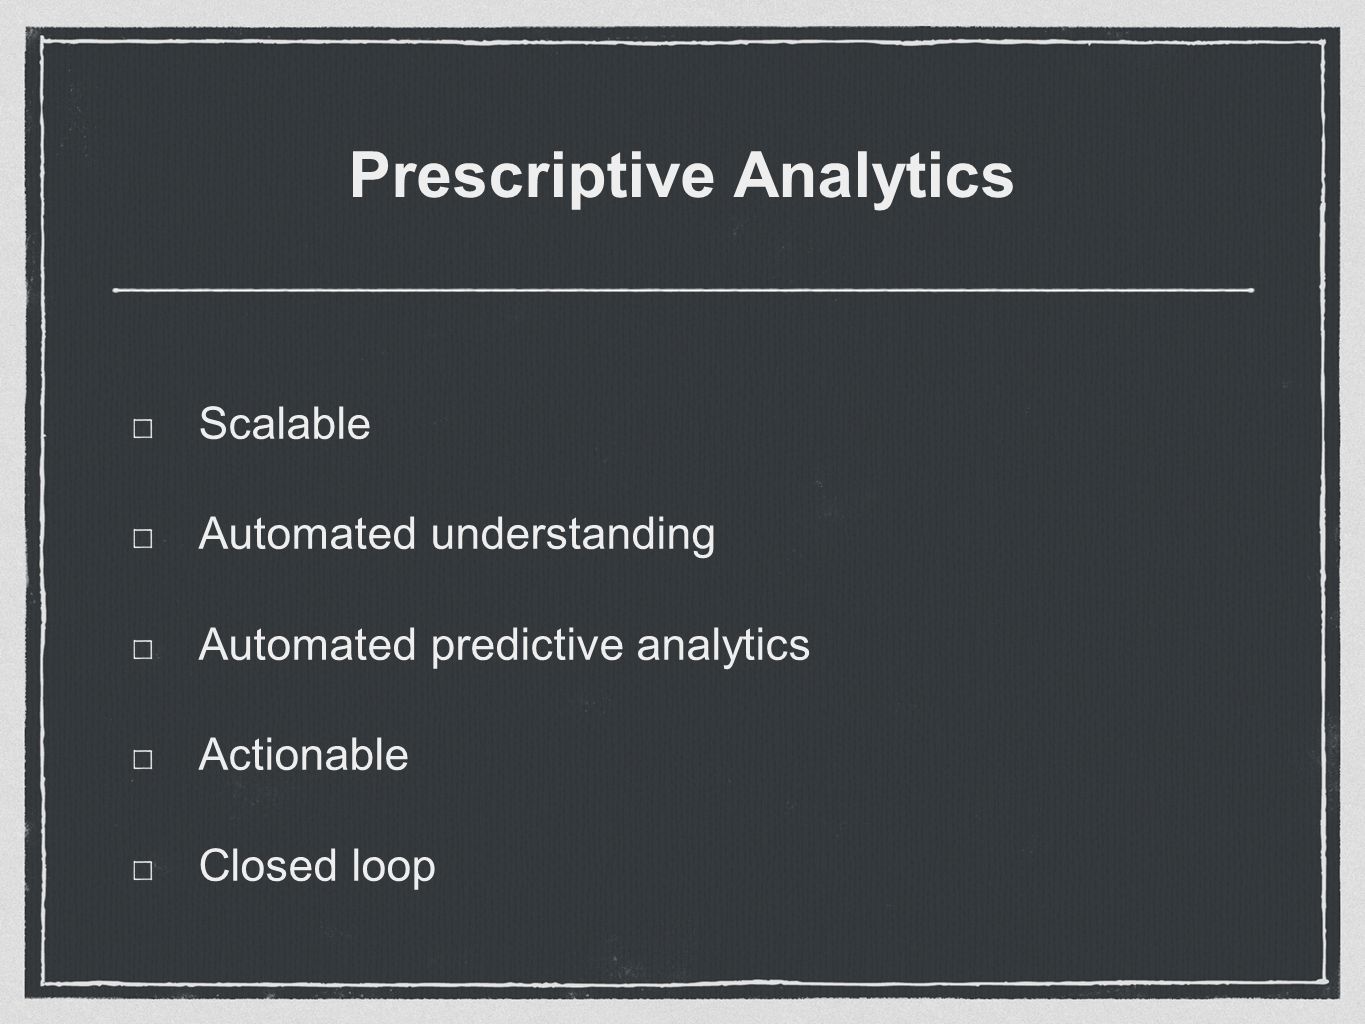 Prescriptive Analytics Scalable Automated understanding Automated predictive analytics Actionable Closed loop